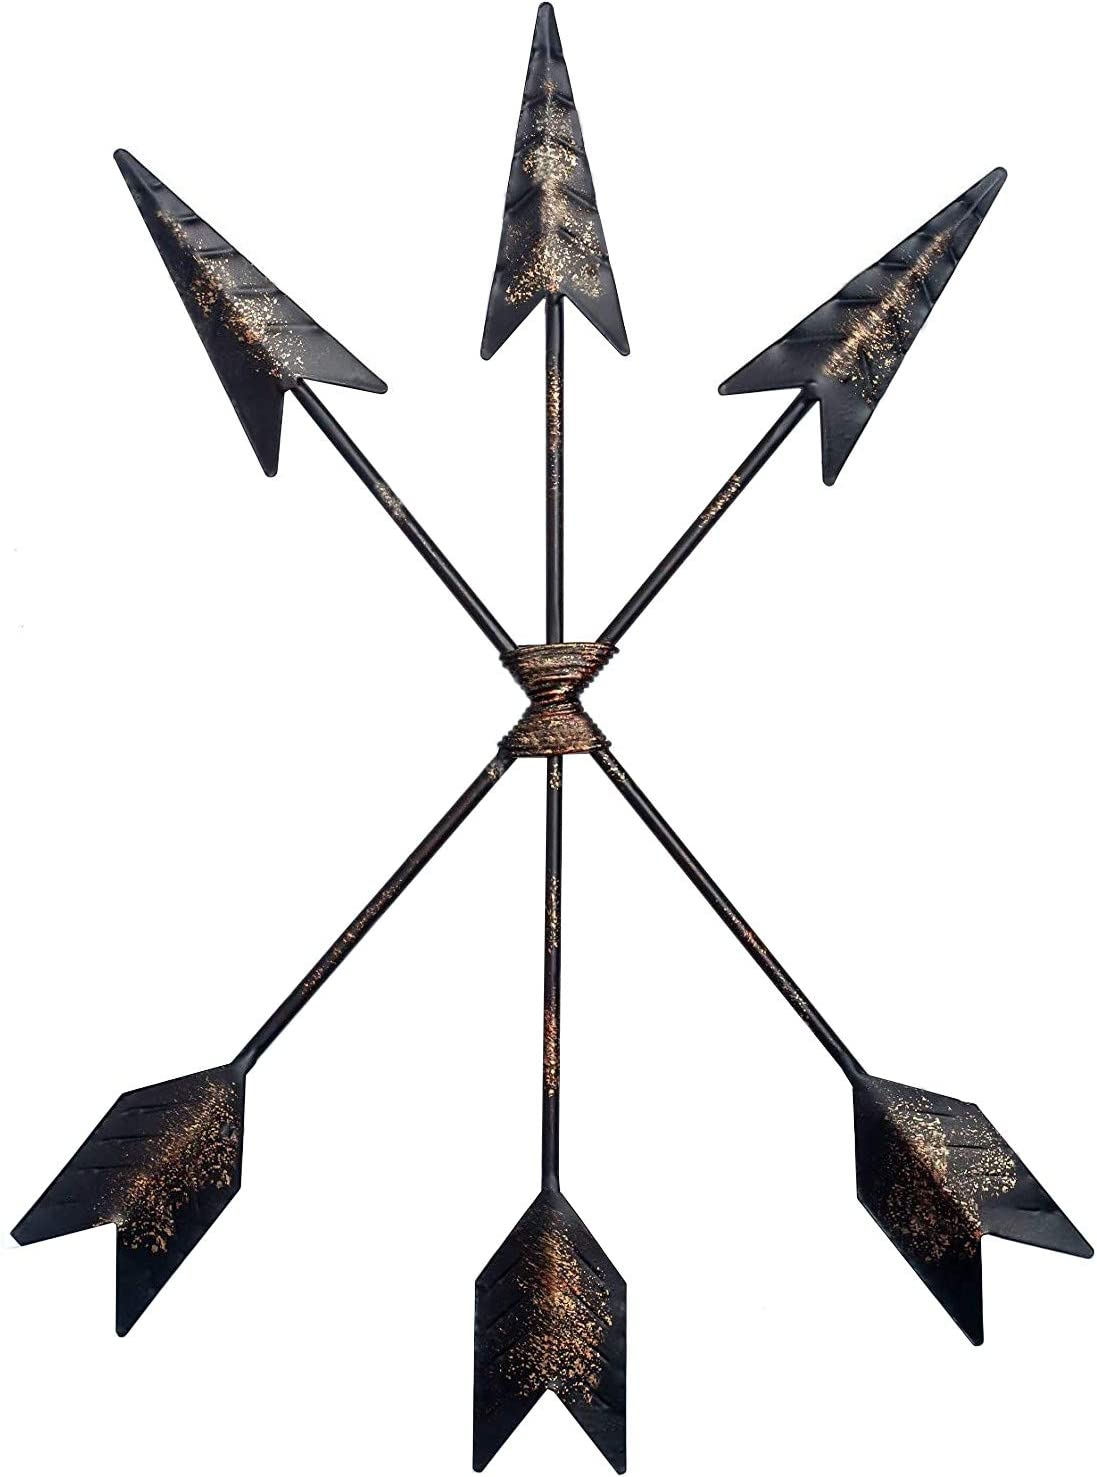 Toysdone Cast Iron Three Arrow Wall Decor